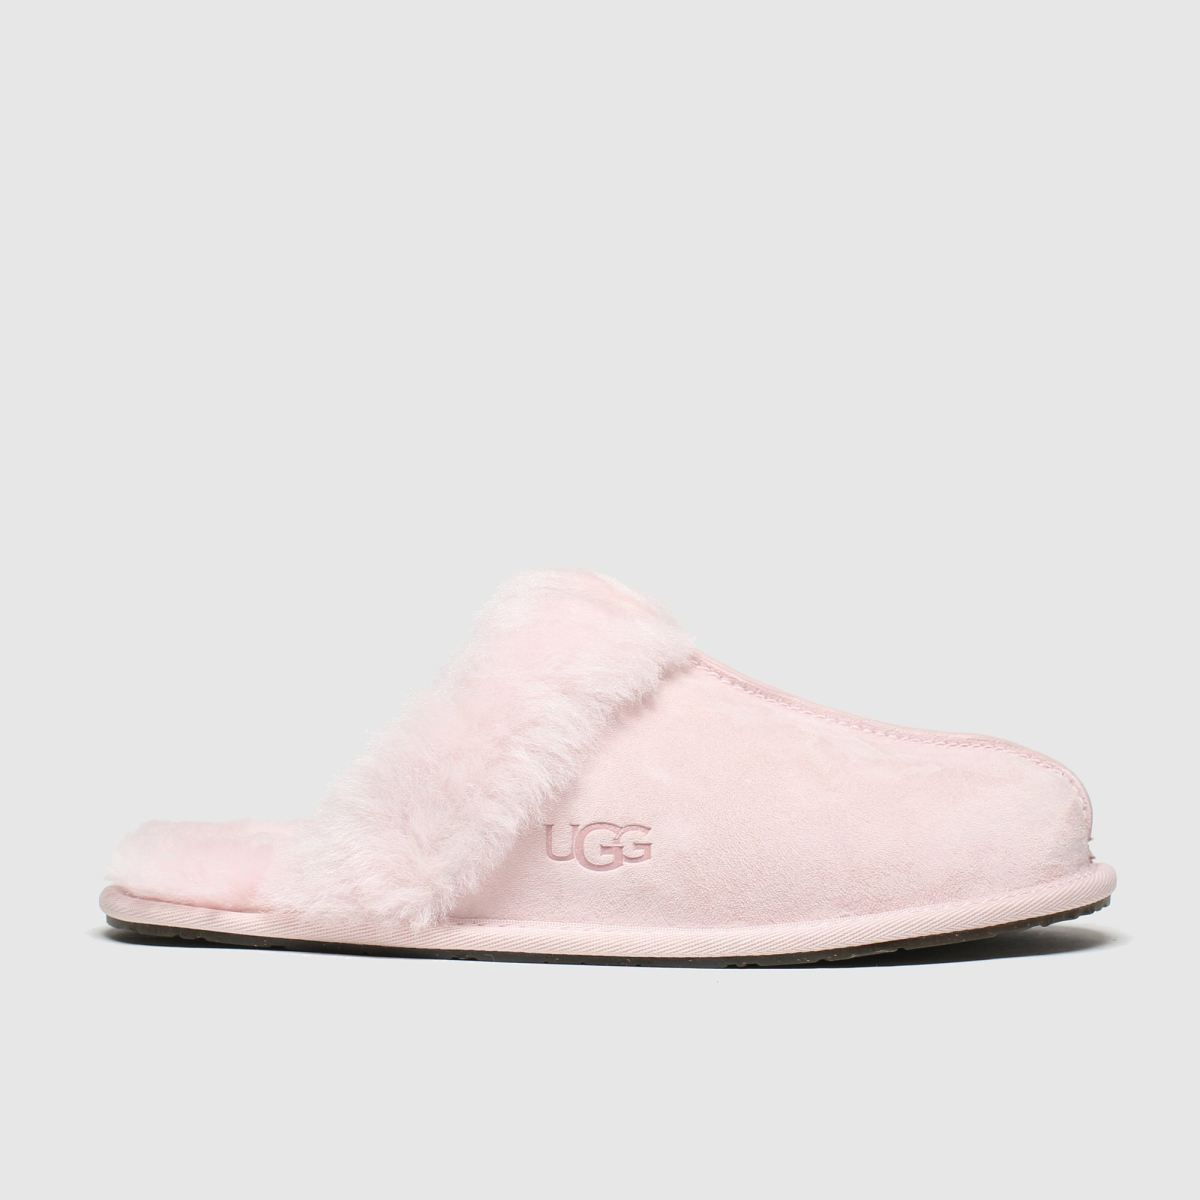 Ugg Pale Pink Scuffette Ii Slippers